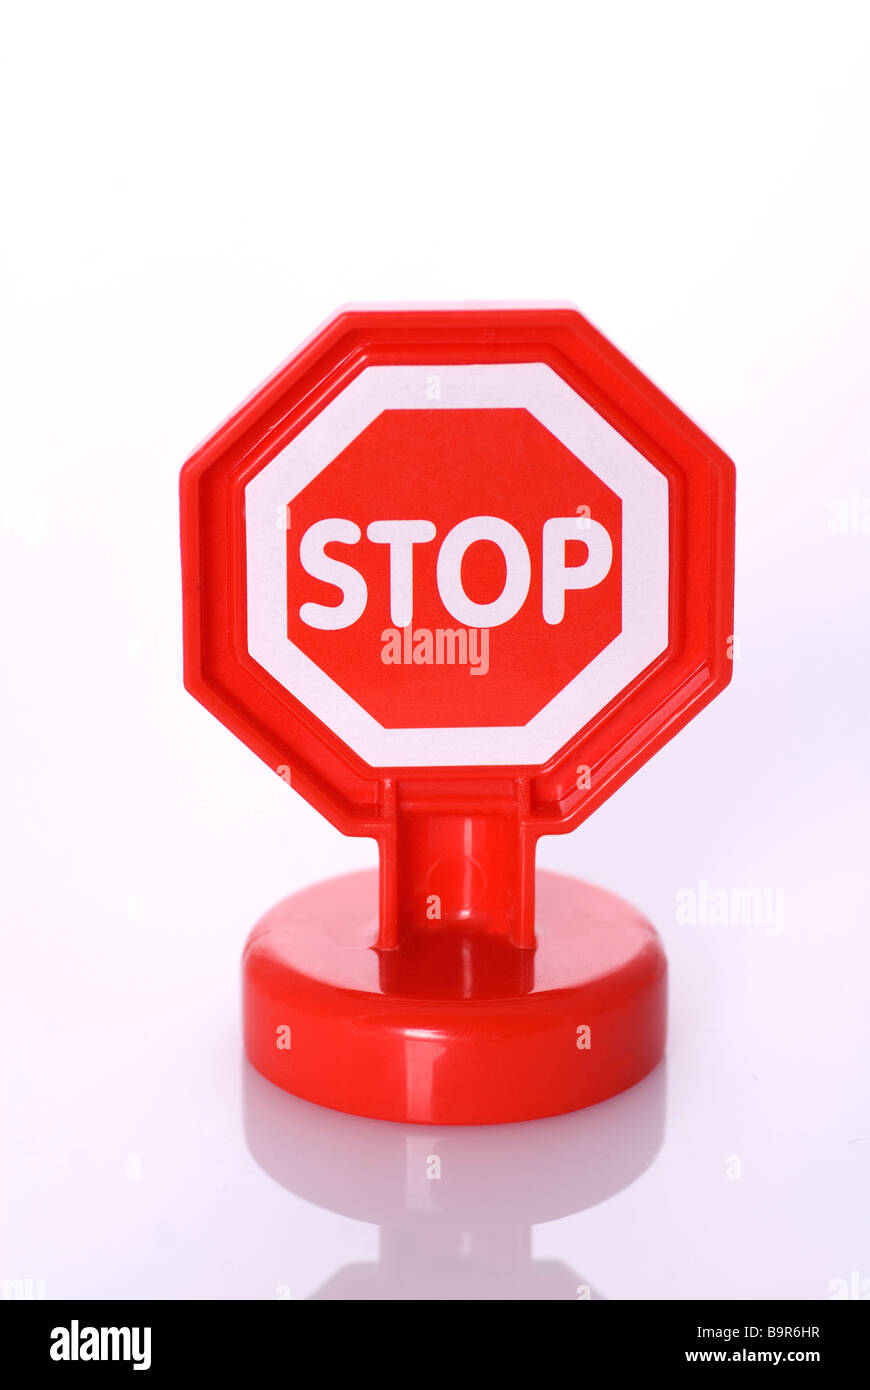 Stop sign toy against a white background - Stock Image